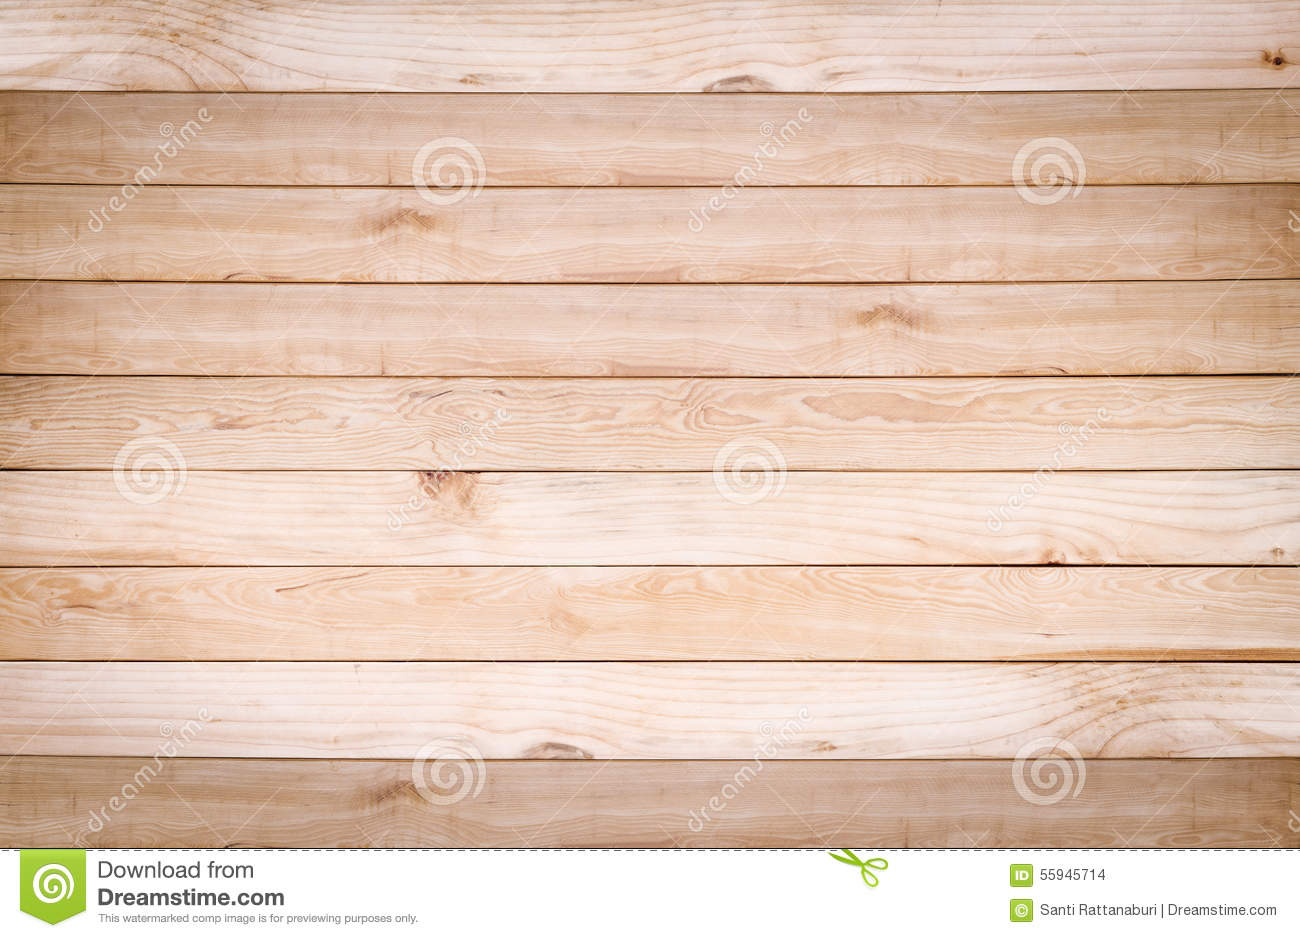 Wood texture may use as background